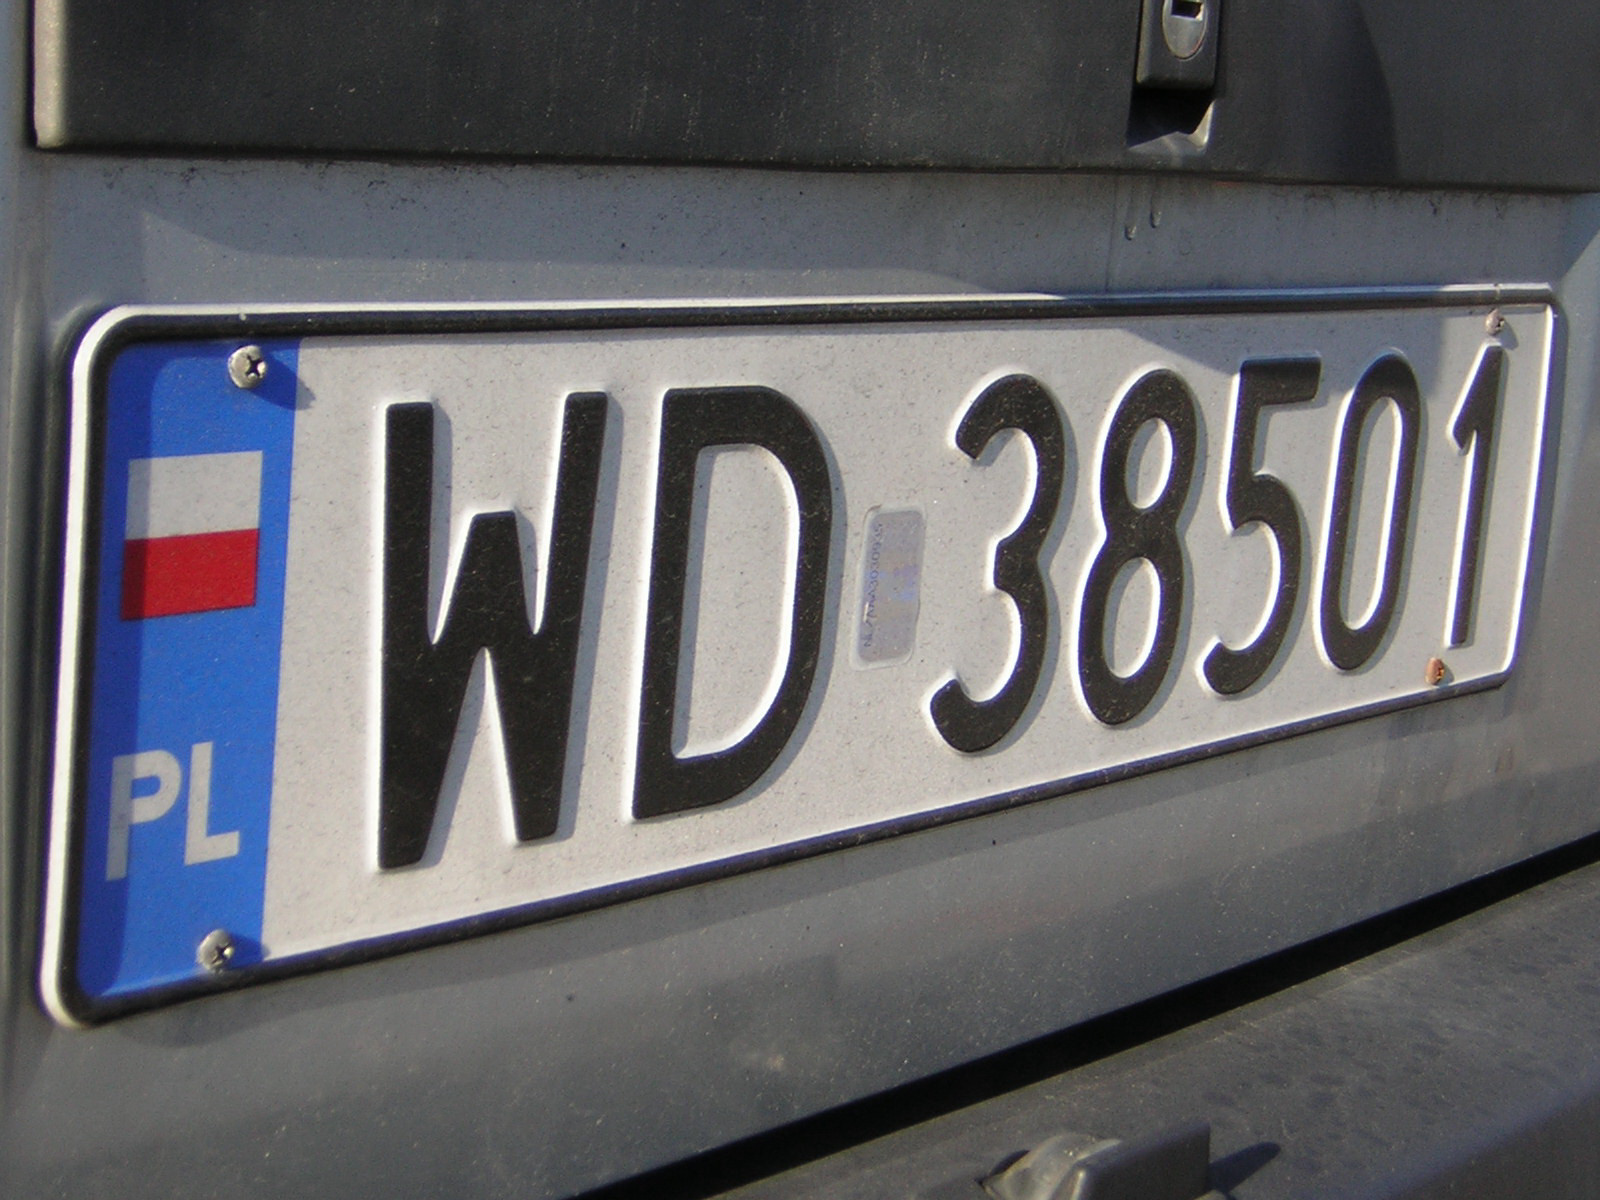 how to know registration number of car